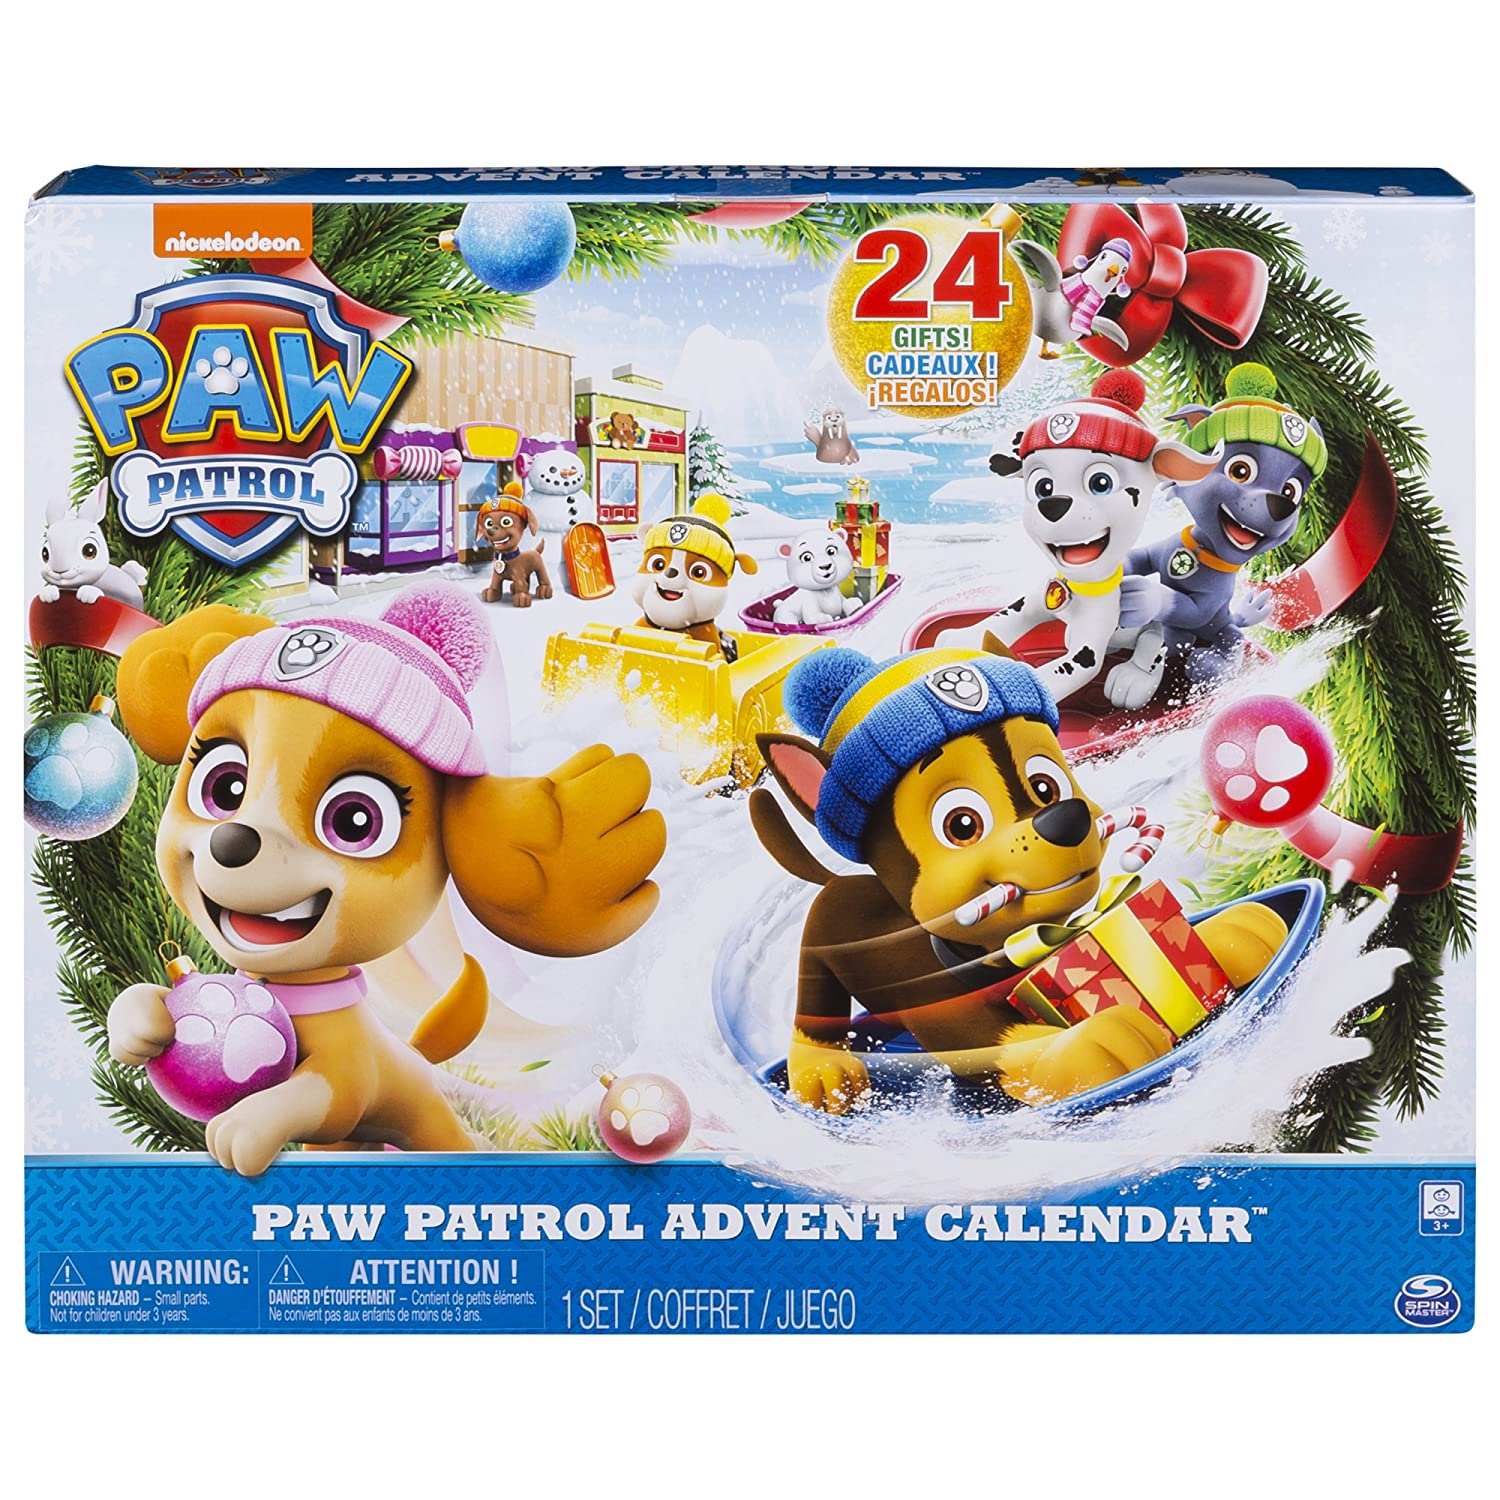 Amazon.com: Paw Patrol Advent Calendar with 24 Collectible Plastic Figures: Toys & Games